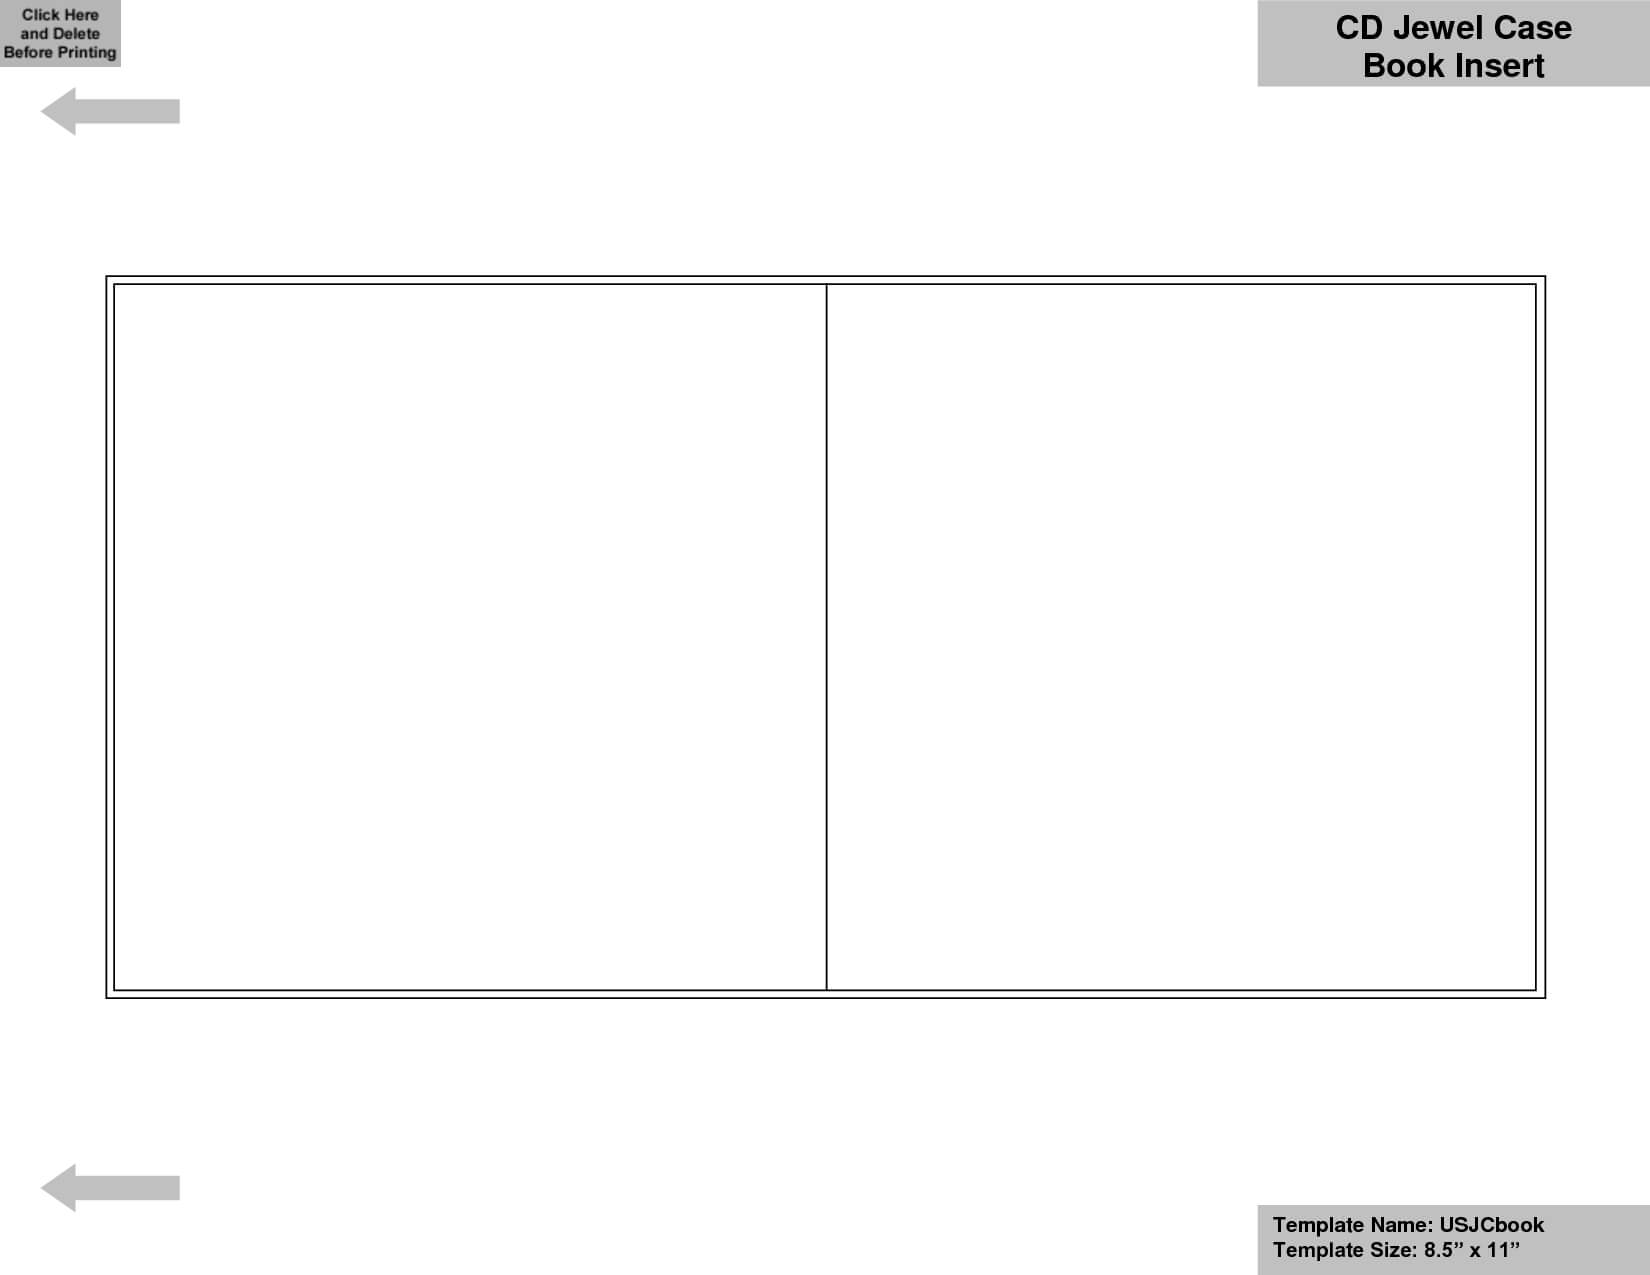 Cd Liner Notes Template Word - Atlantaauctionco Within Cd Liner Notes Template Word